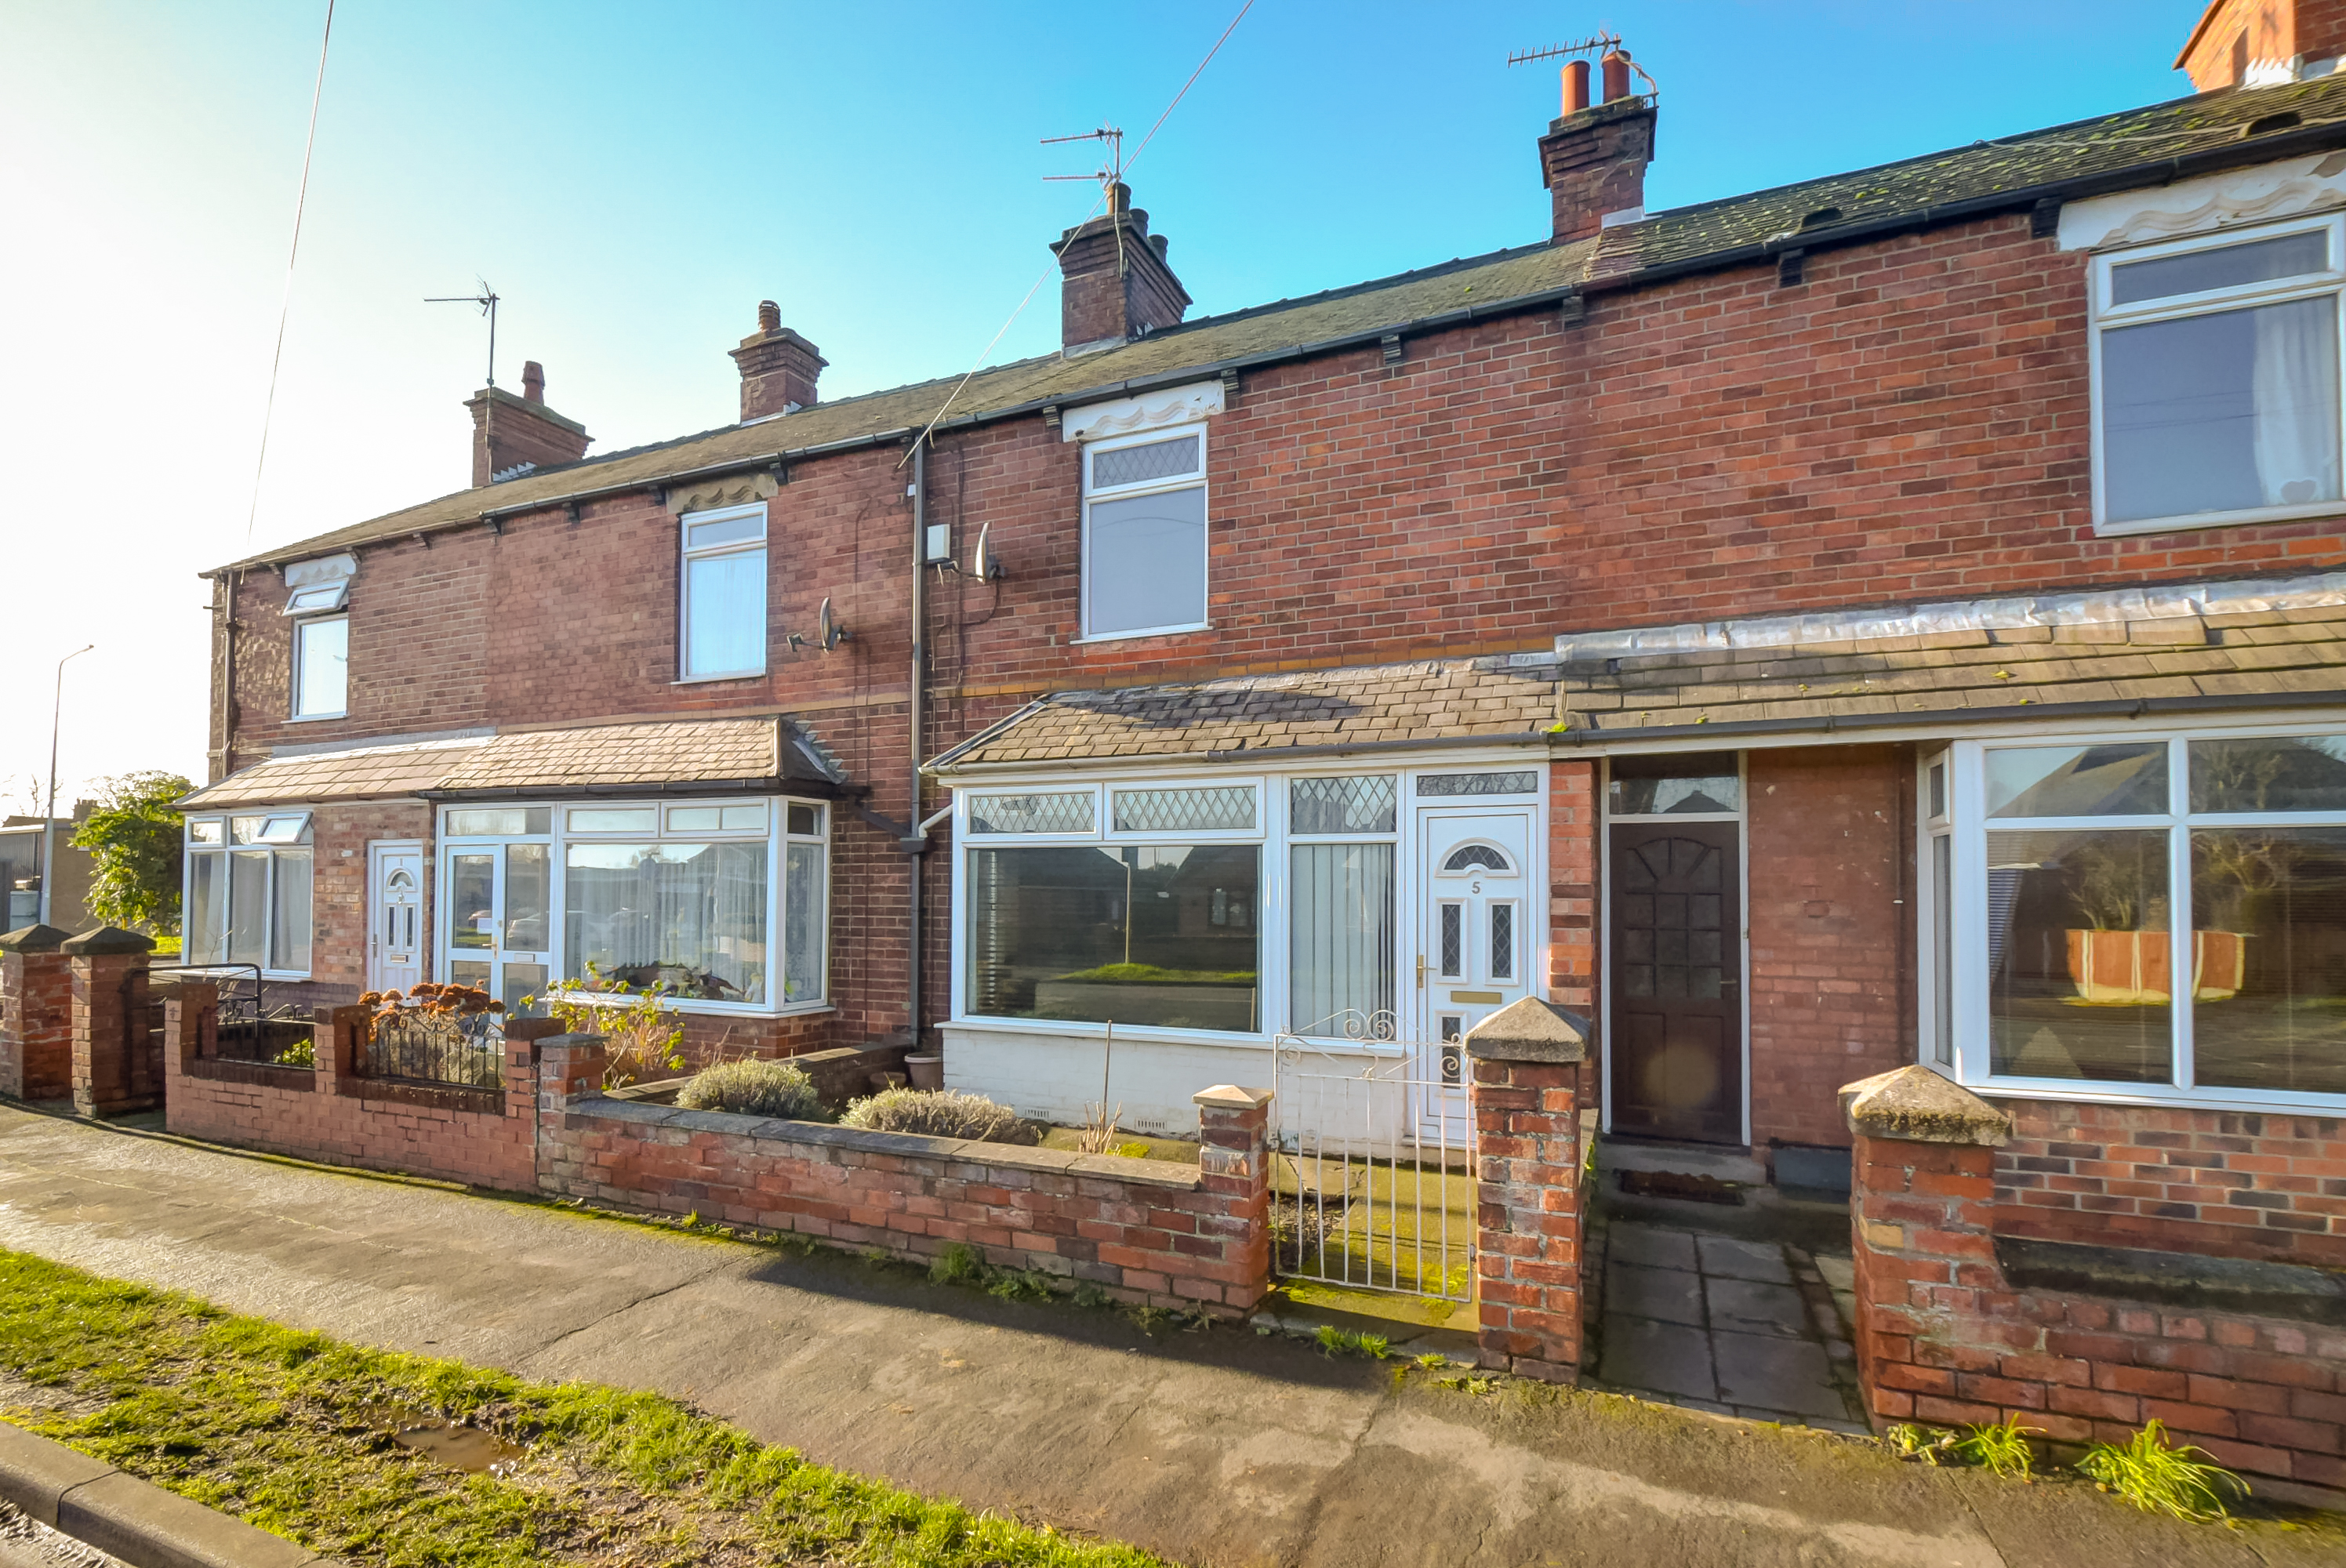 Wolfreton Road, Hull £0 Sold by Lets Sell